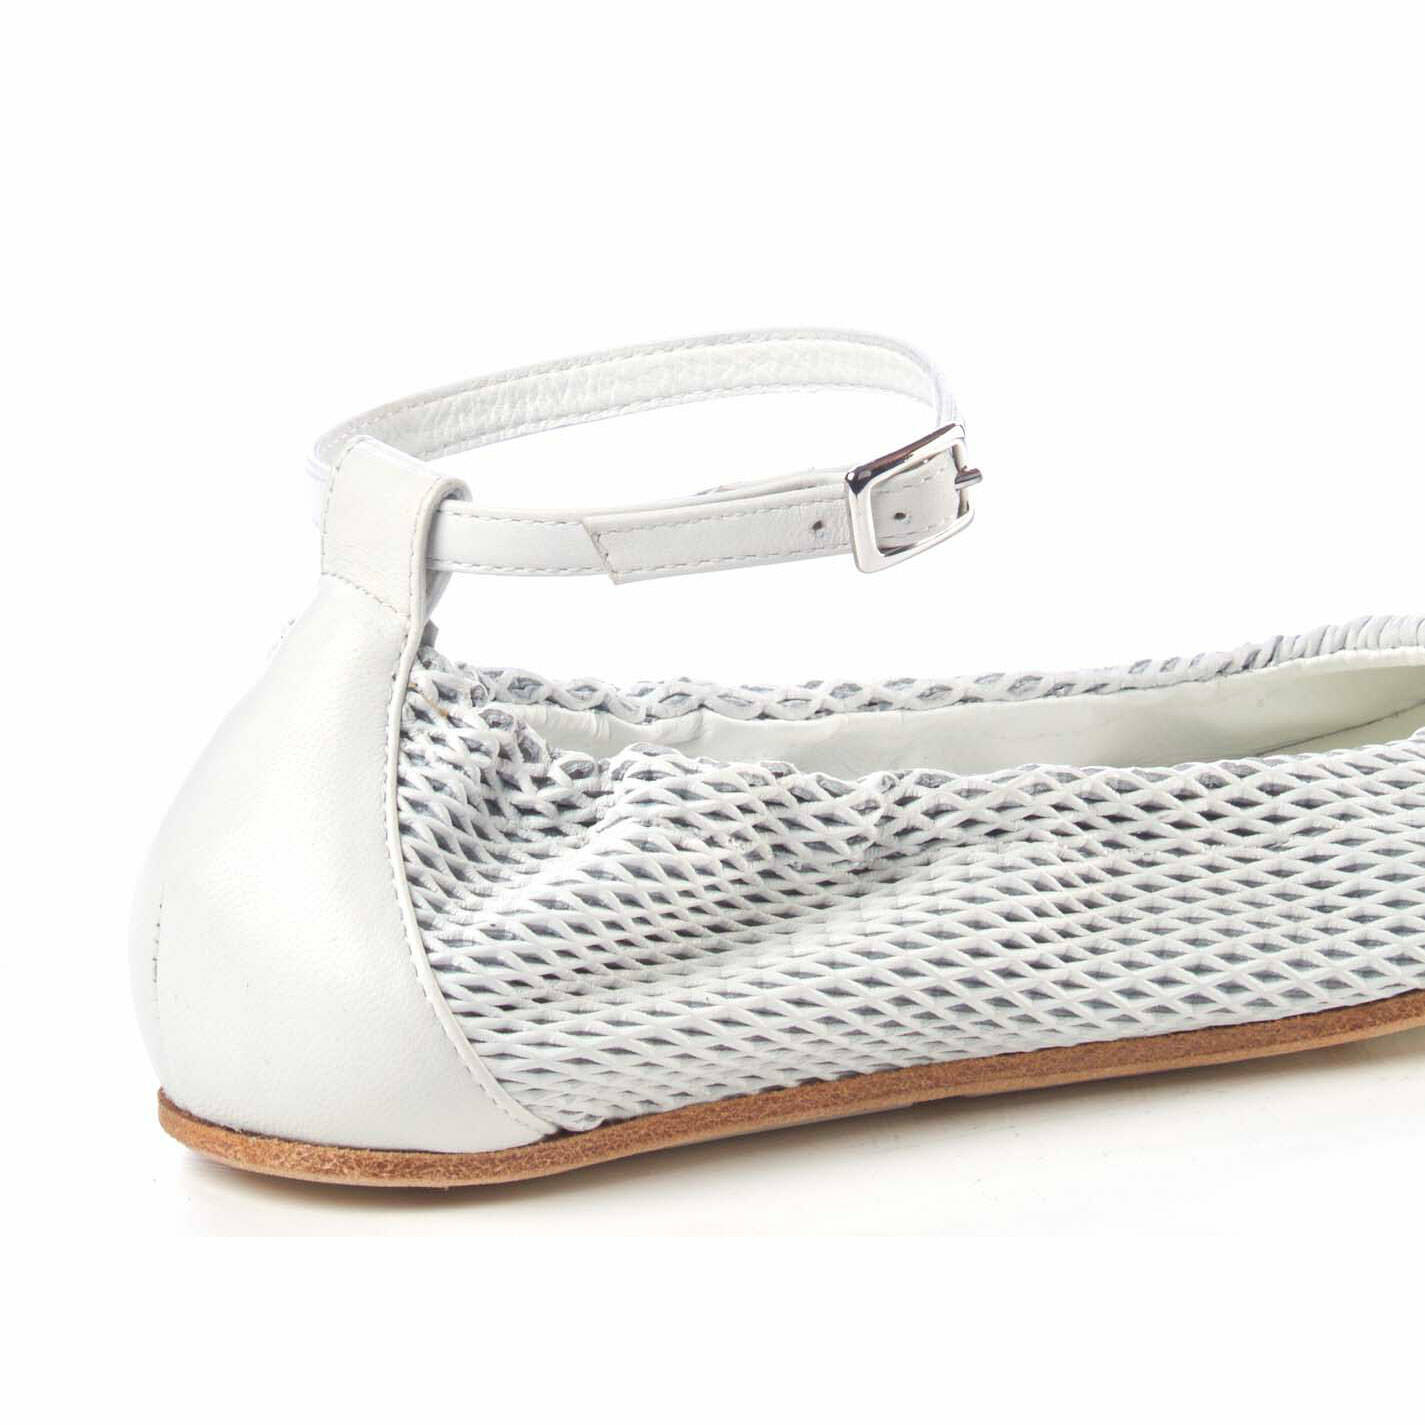 Ballerina flats in soft, perforated white nappa leather